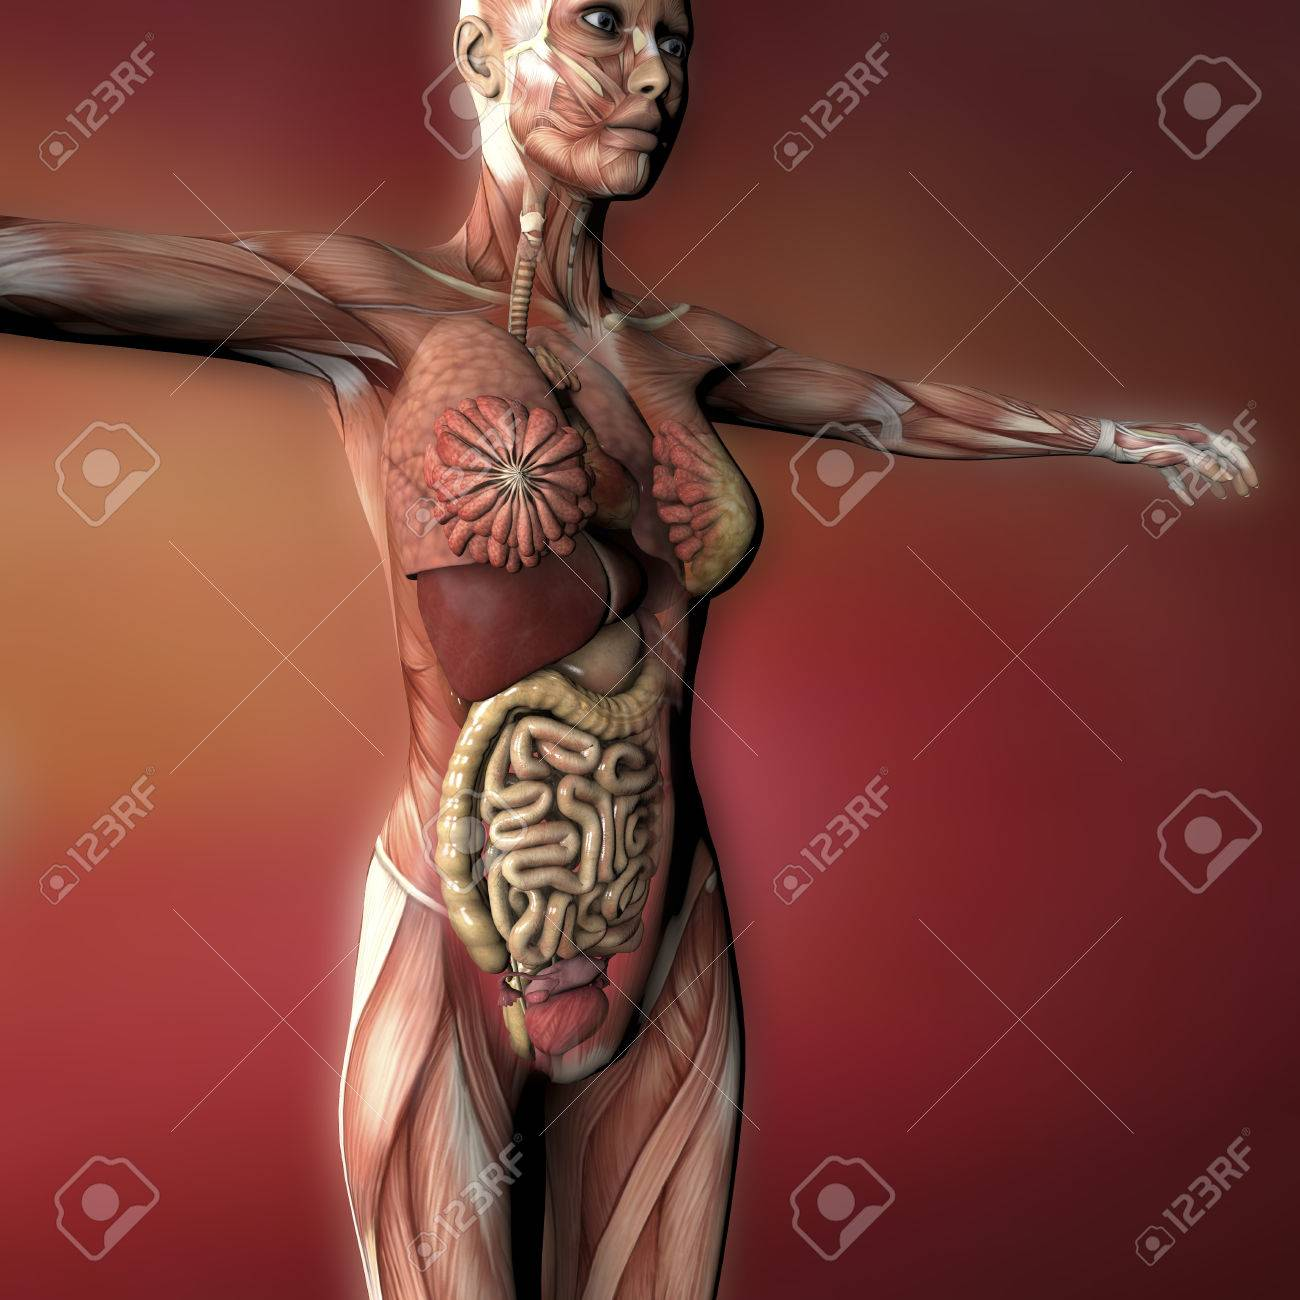 Female human body anatomy muscles and organs